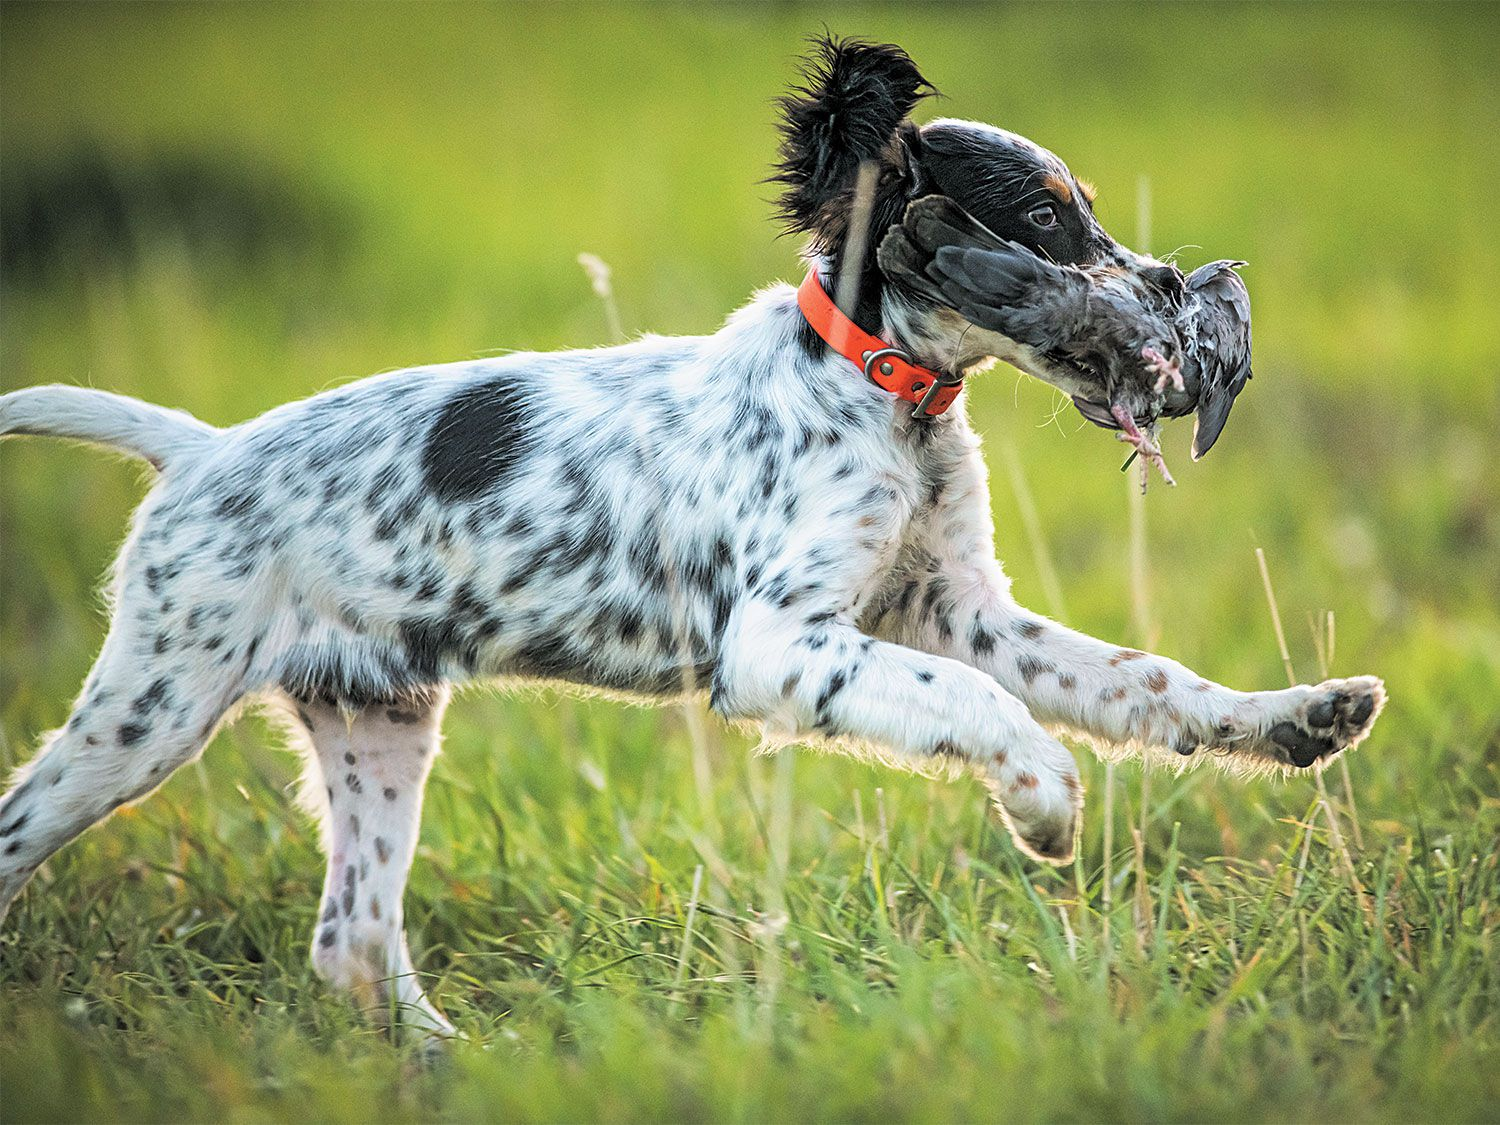 The English setter Crosby puppy basically works in recovery with a pigeon.